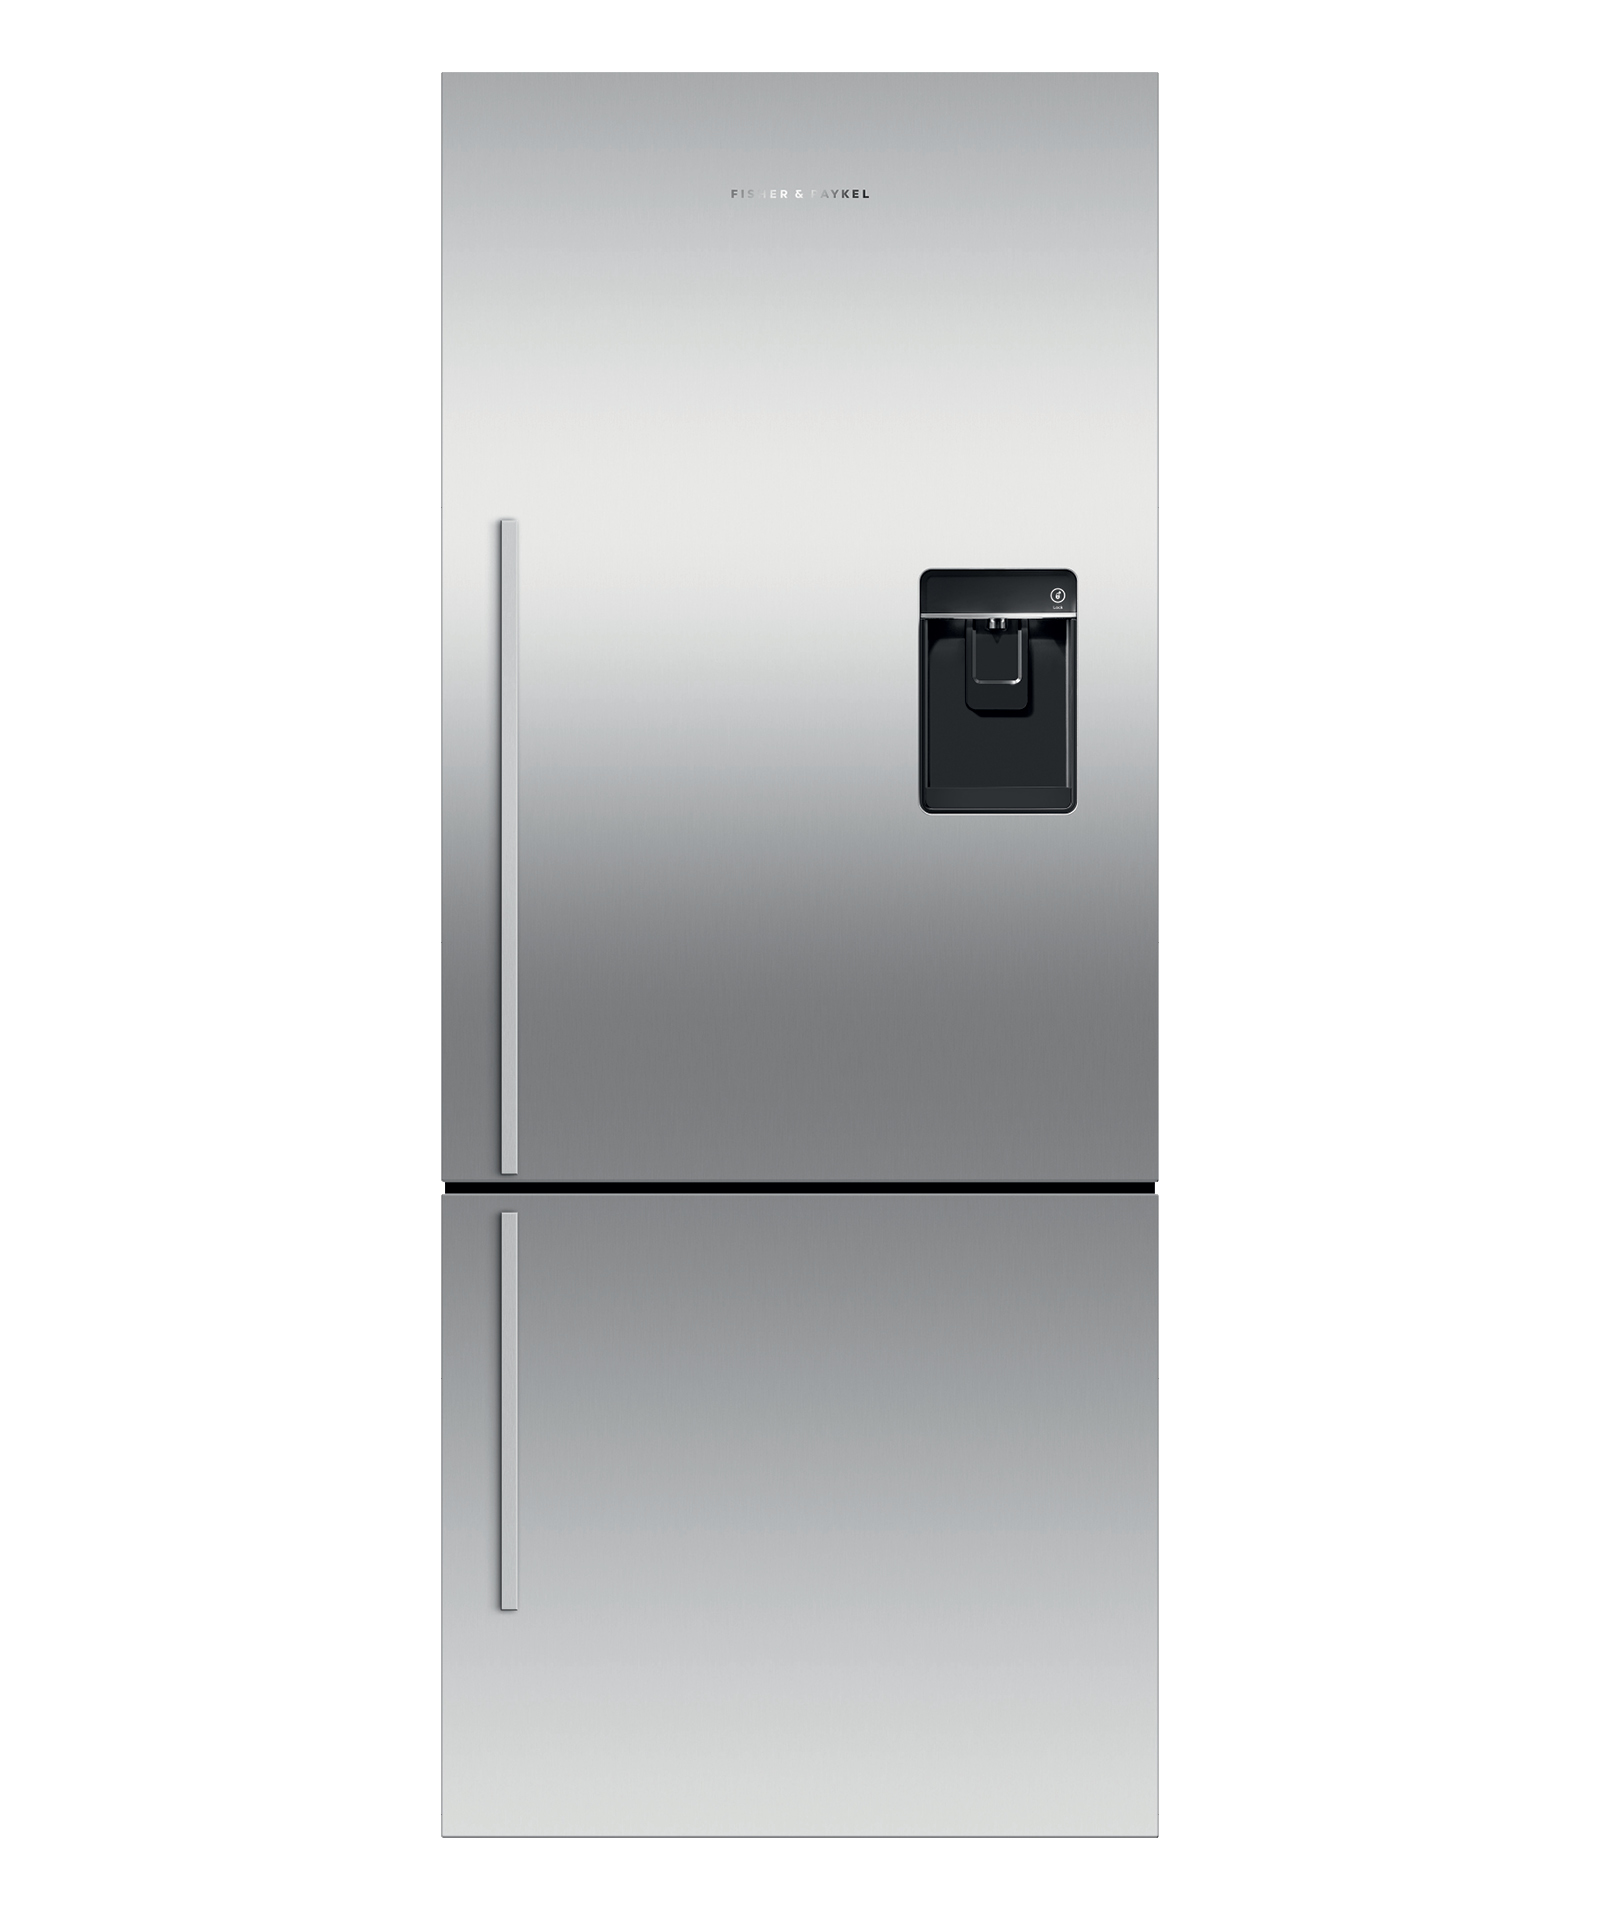 E442BRXFDU4 - ActiveSmart™ Fridge - 680mm Bottom Freezer with Ice & Water 442L - 25546